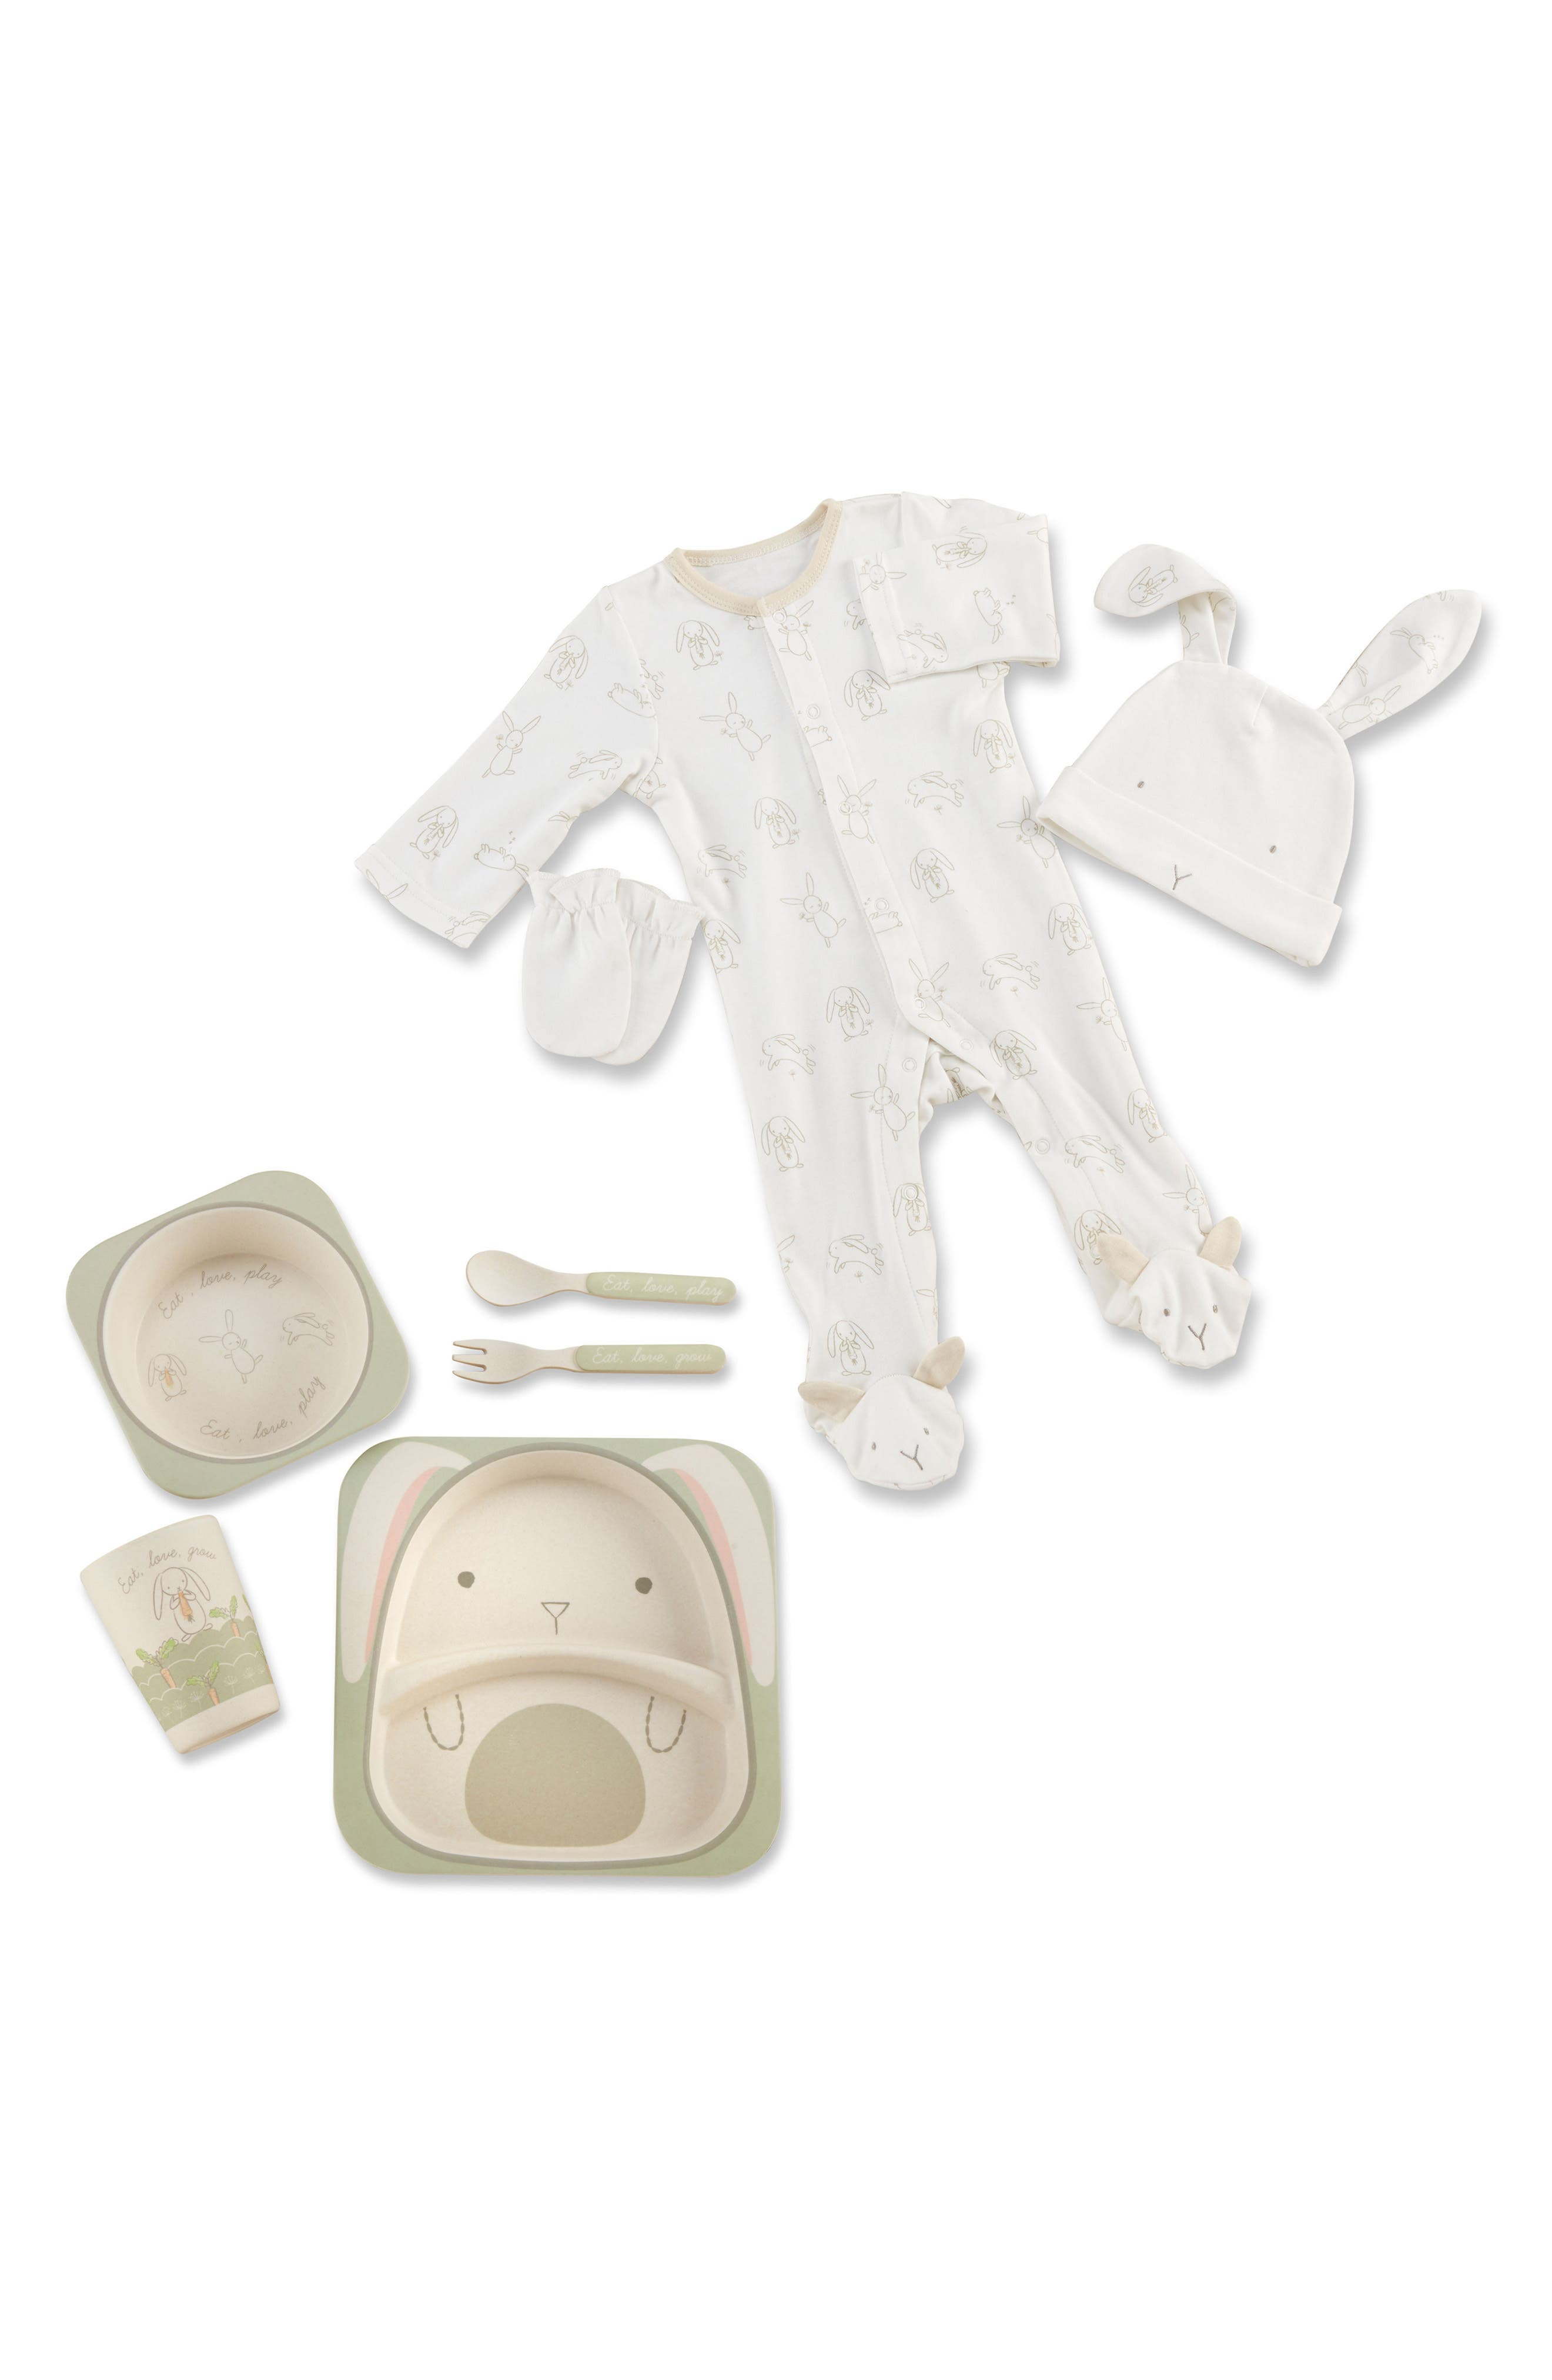 Natural Baby One-Piece Pajamas, Hat, Mittens & 5-Piece Feeding Set,                             Main thumbnail 1, color,                             Beige And White